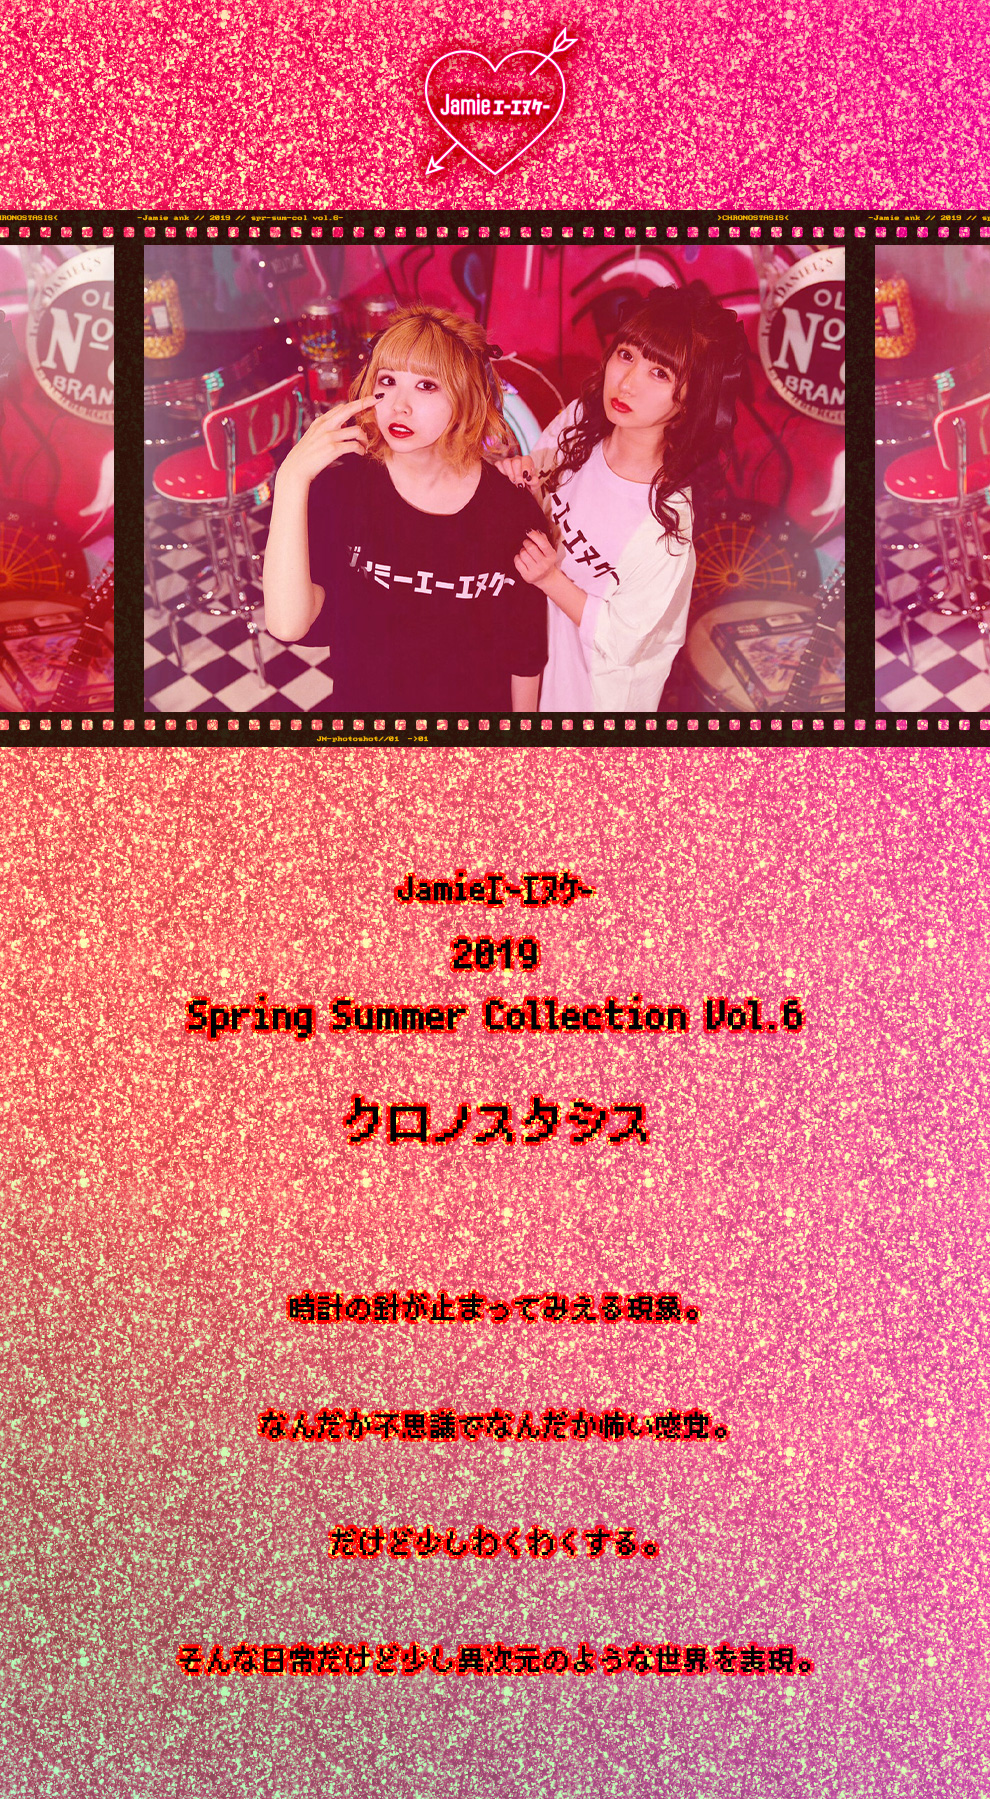 Jamieエーエヌケー 2019 Spring Summer Collection Vol.6「クロノスタシス」